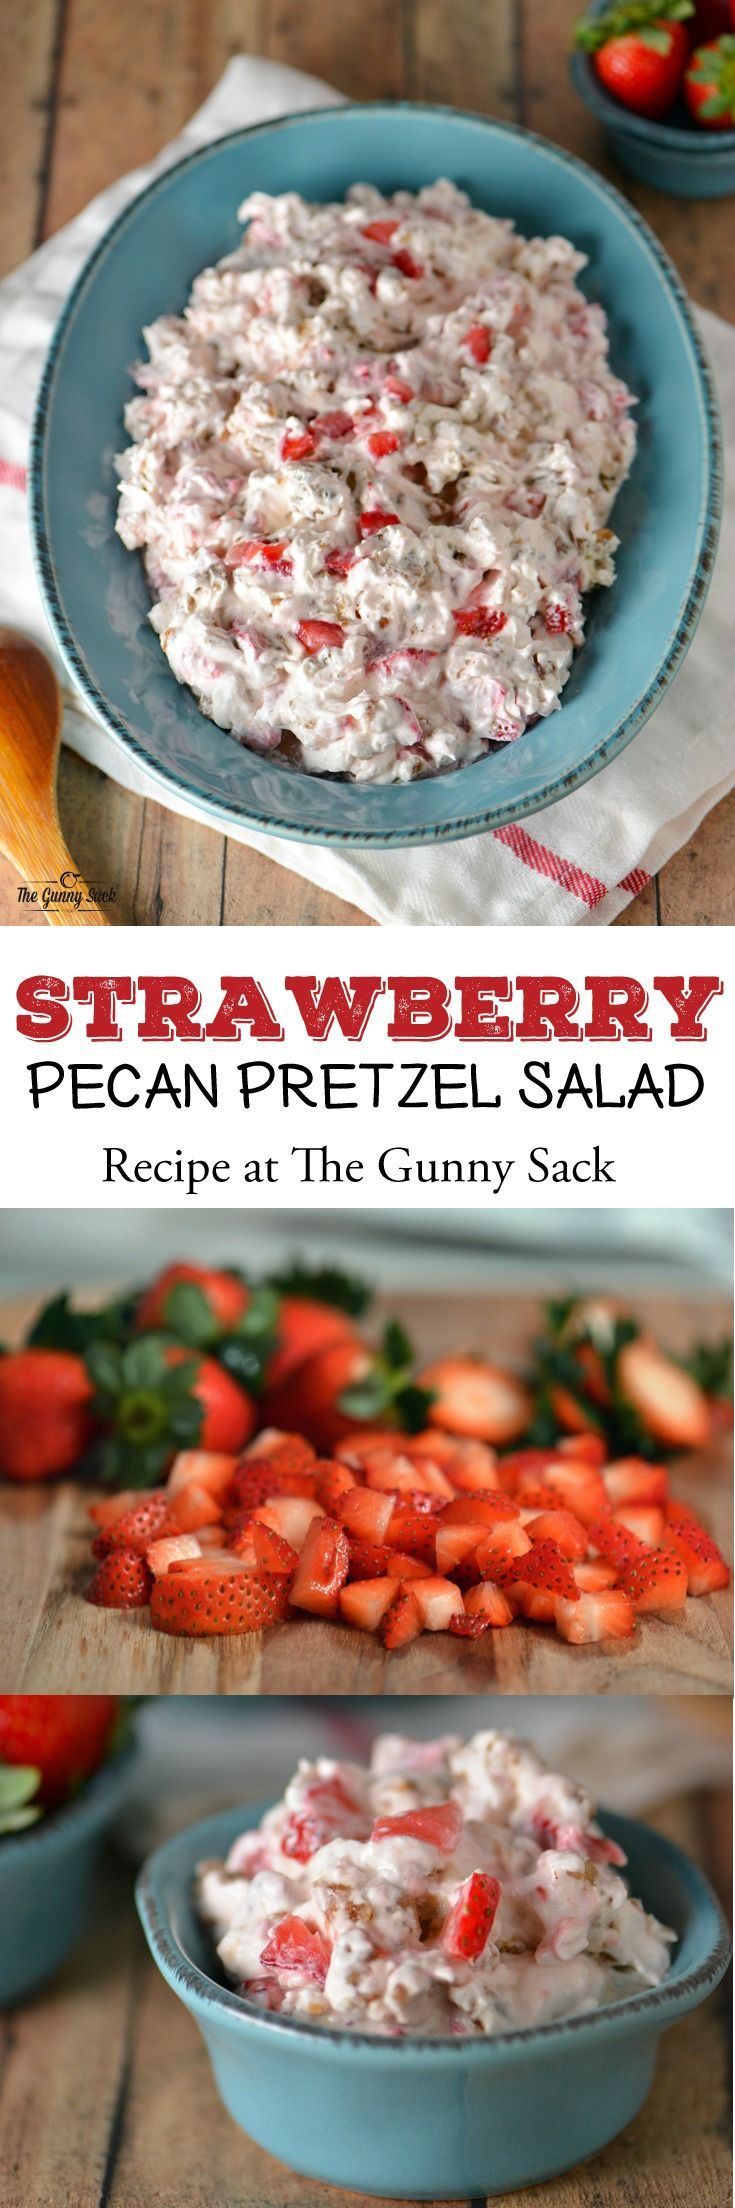 This Strawberry Pecan Pretzel Salad is a MUST at all of our holiday celebrations. Try sharing this recipe at your Easter dinner!